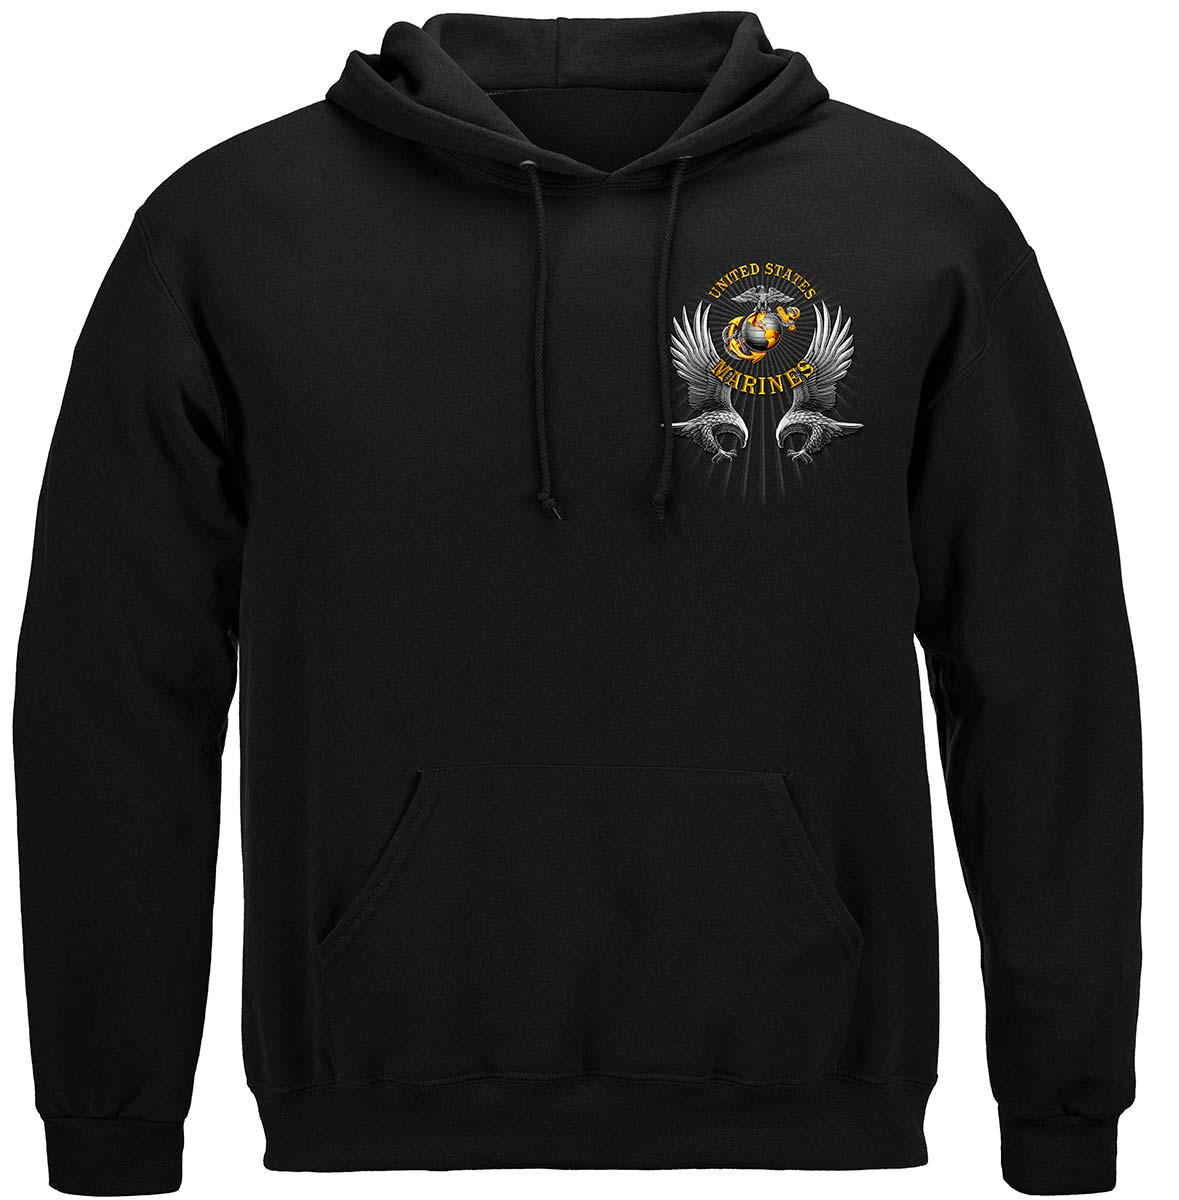 USMC Marine Corps Founded Date 1775 Premium Hooded Sweat Shirt